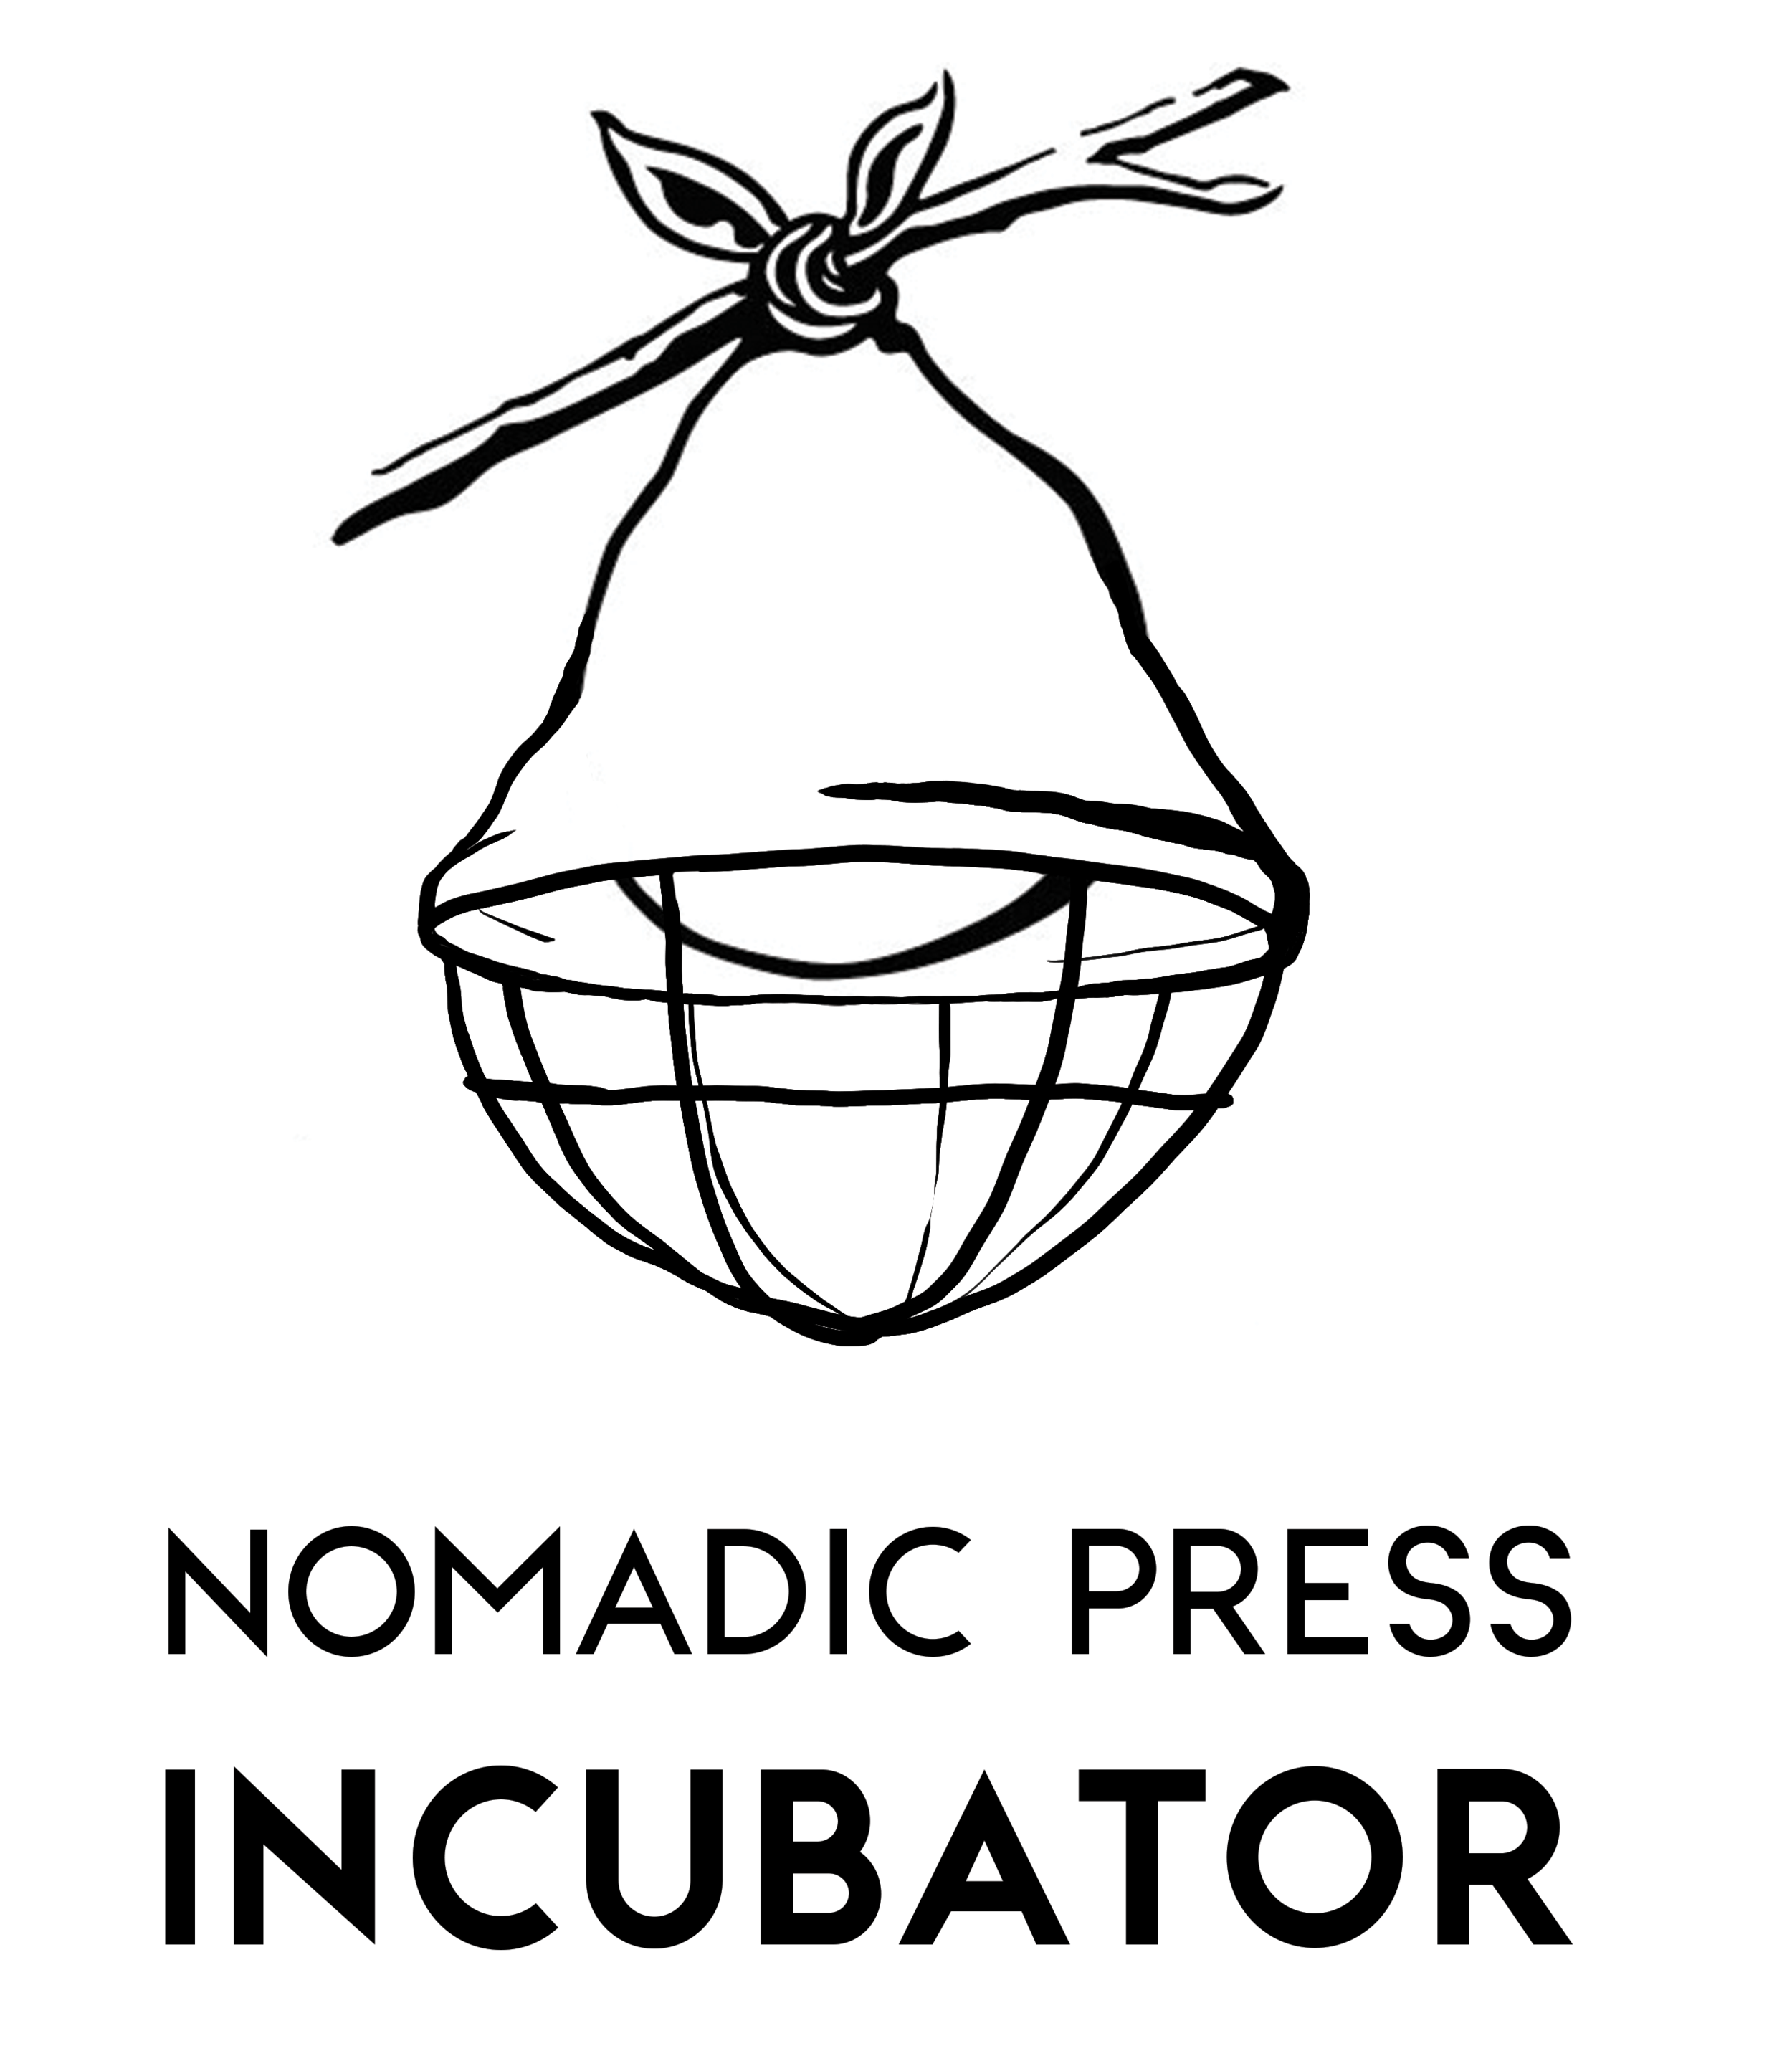 Community Participants - The Nomadic Press Incubator Program aims to offer low-cost community space in Oakland for ongoing, bi/monthly reading series', events/classes/community meetings, or workshops that align with Nomadic Press' mission and vision.Please take some time to review our about page or better yet, attend some of our events and read our publications if you have not yet done so to get a feel for who we are.POC/LGBTQIA+ folks highly encouraged to apply.If you have an idea for an ongoing, bi/monthly reading series, workshop, class/community meeting, please fill out this form. If selected, you and your group will be given 4 hours per month of use of the Nomadic Press space at 111 Fairmount Avenue in Oakland for $80 per month.There needs to be one main organizer who will be responsible for ensuring that the community guidelines for the space are followed and the space is taken care of properly and returned to the state in which it was found. Please read our Safe Space Statement to ensure that your idea will adhere as the safety of our spaces and community is paramount.We look forward to hearing from you!